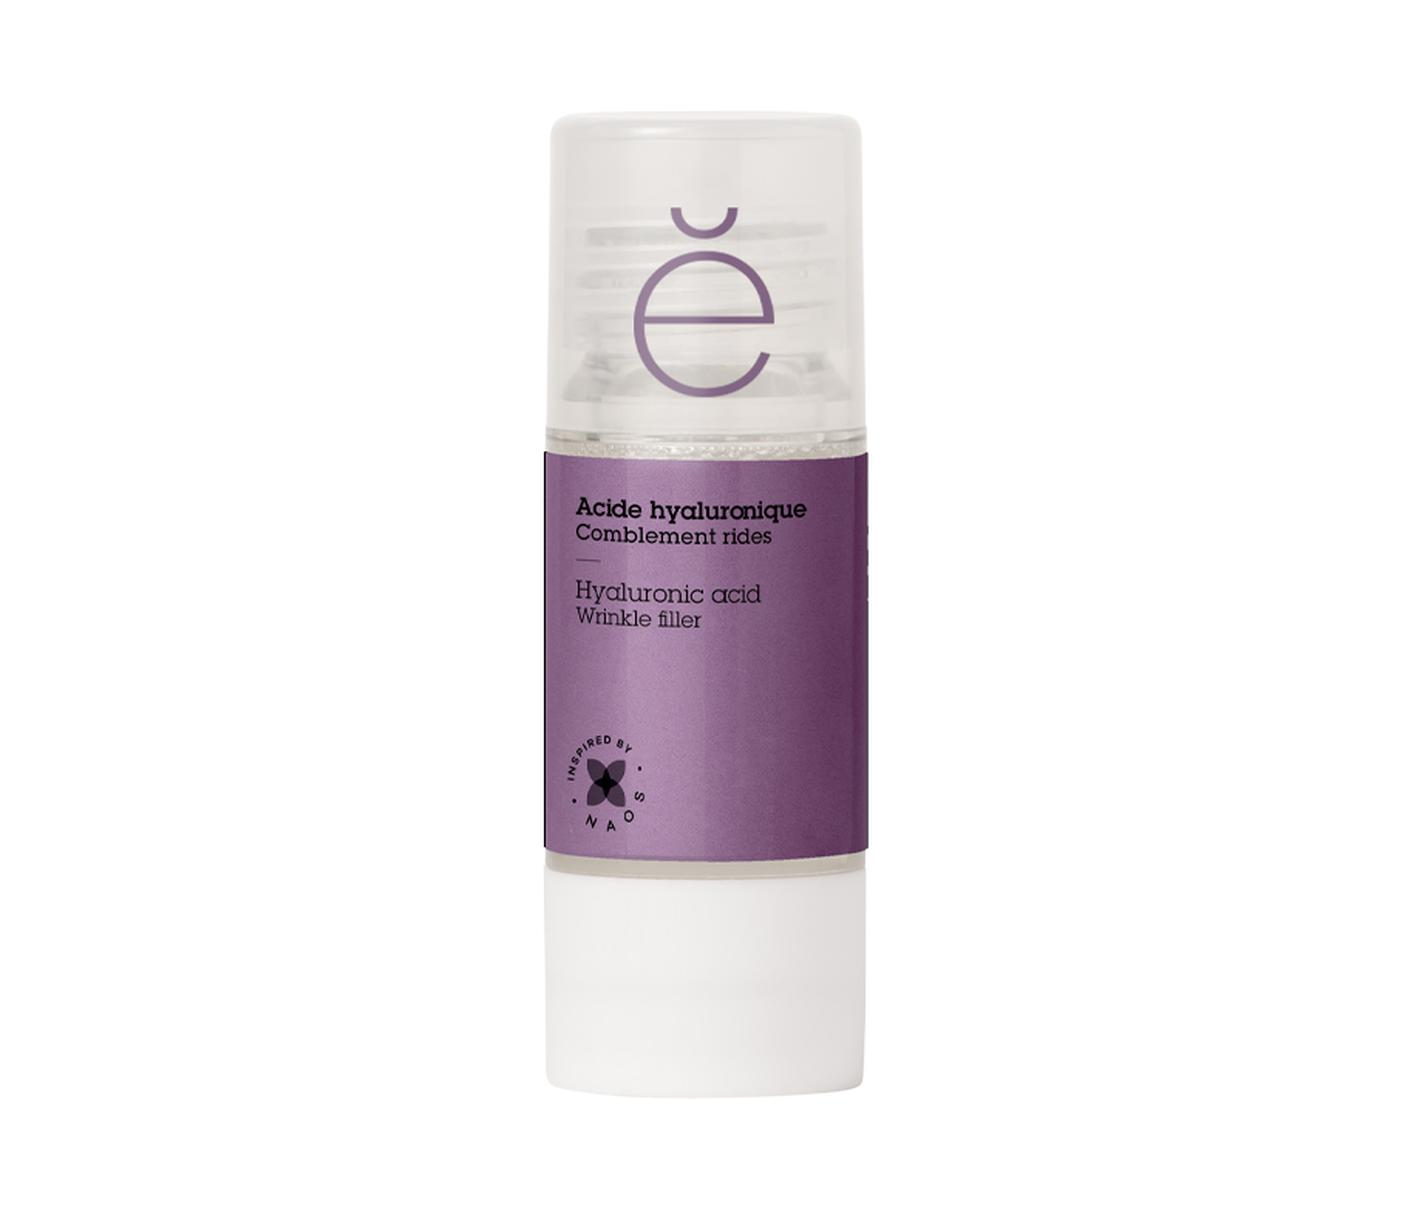 PURE ACTIVE HYALURONIC ACID 15 ML 3001281142